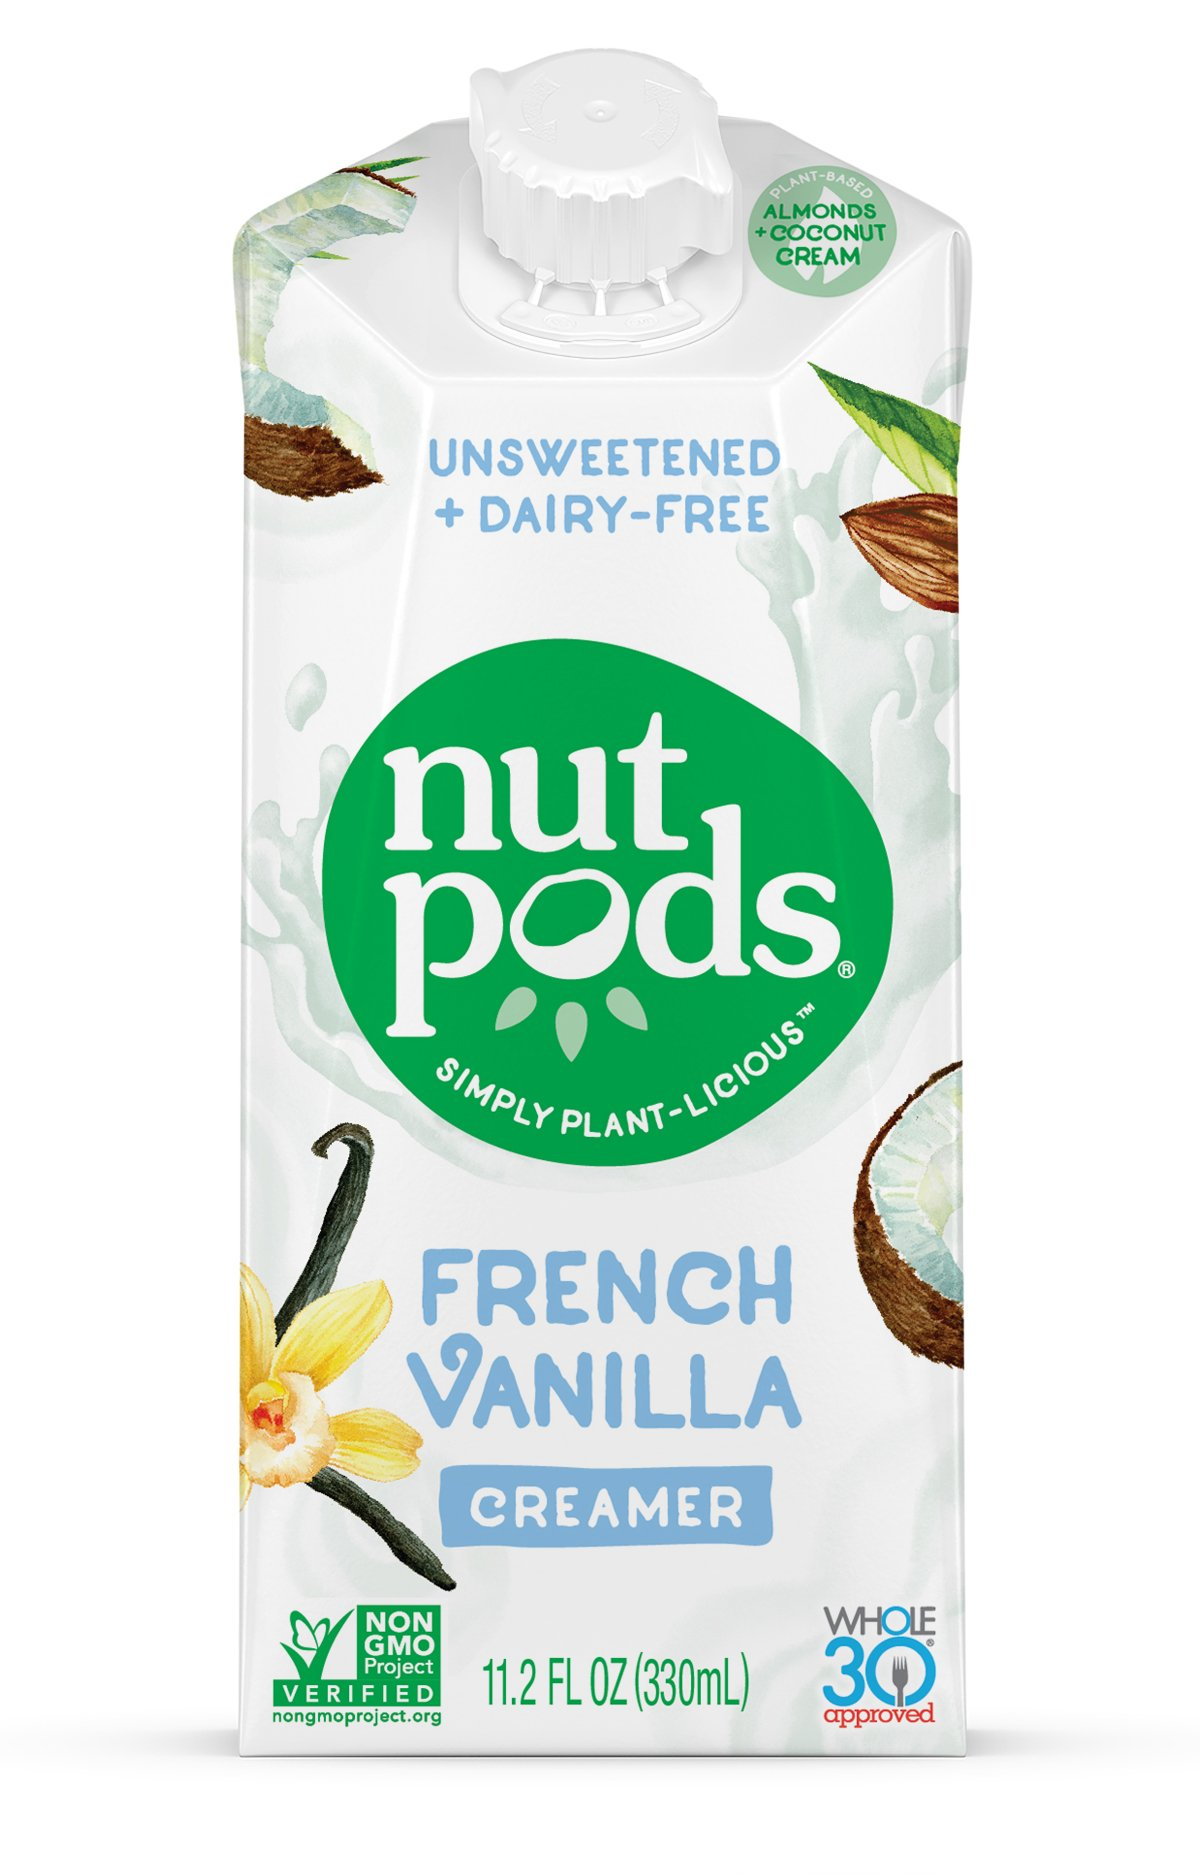 nutpods French Vanilla Dairy-Free Creamer (4-pack) Unsweetened Whole30/Paleo/Keto/Vegan/Sugar Free